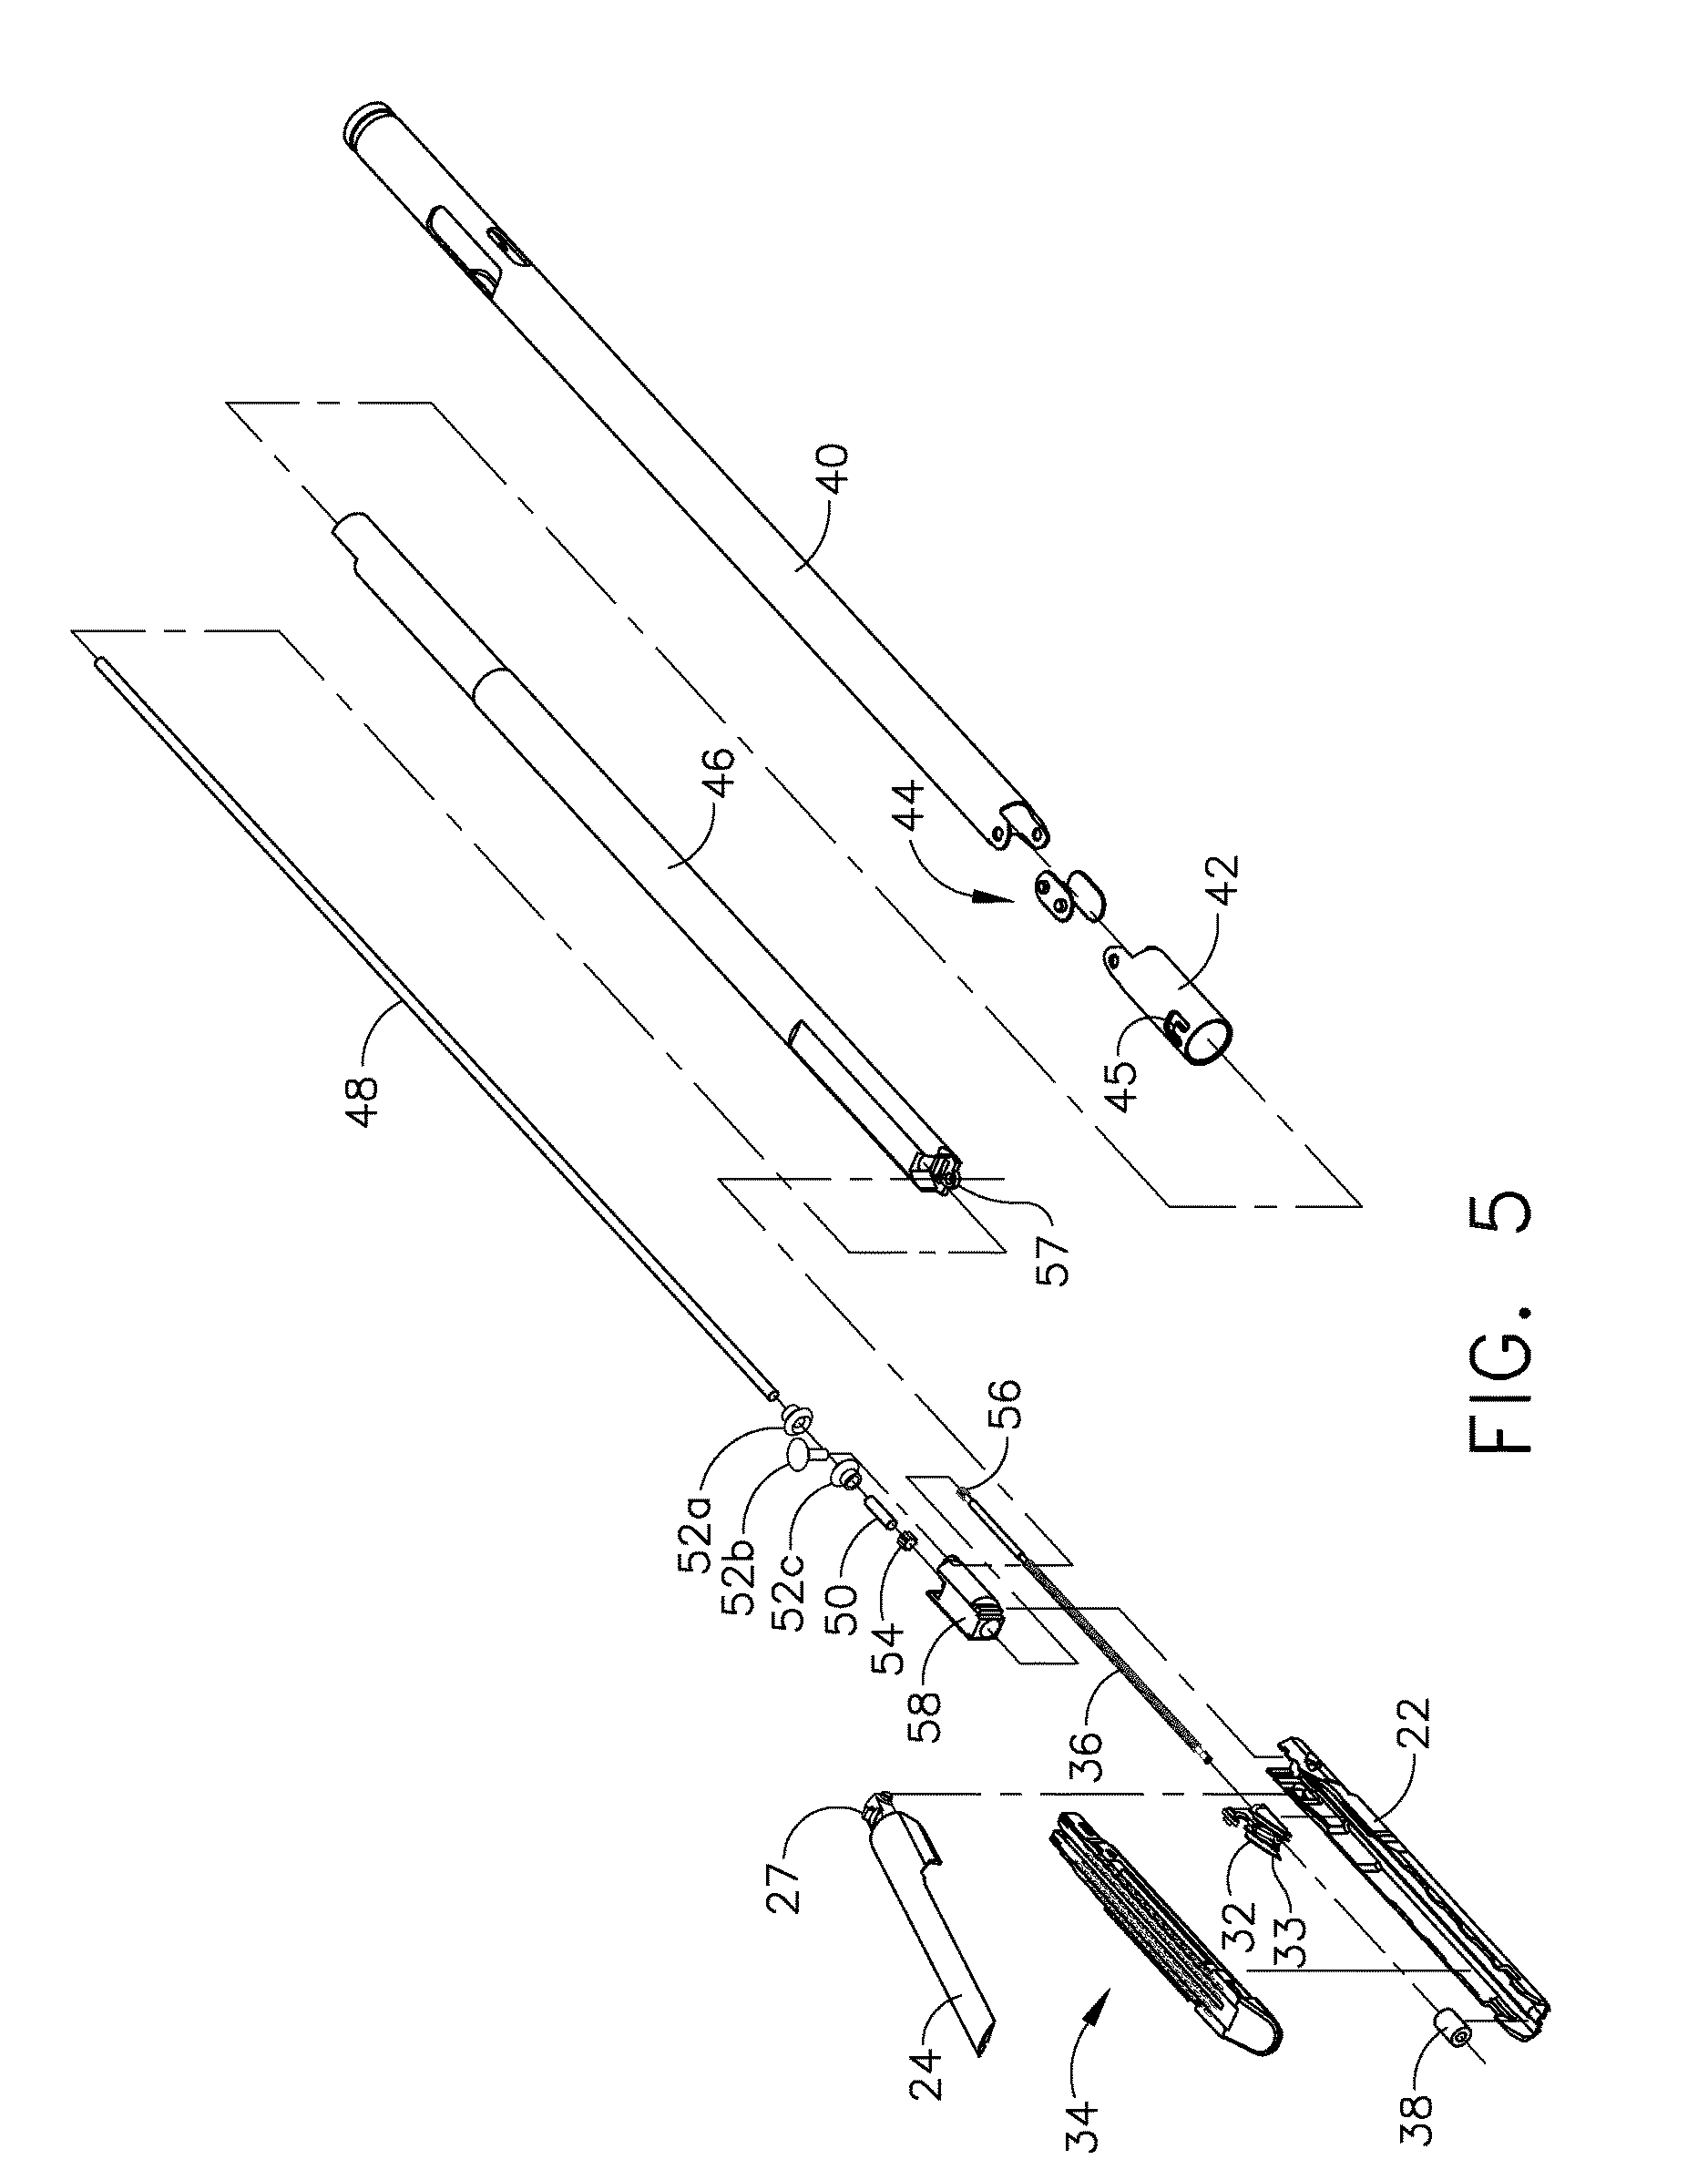 us9730697b2 surgical cutting and fastening instrument with  us9730697b2 surgical cutting and fastening instrument with apparatus for determining cartridge and firing motion status patents